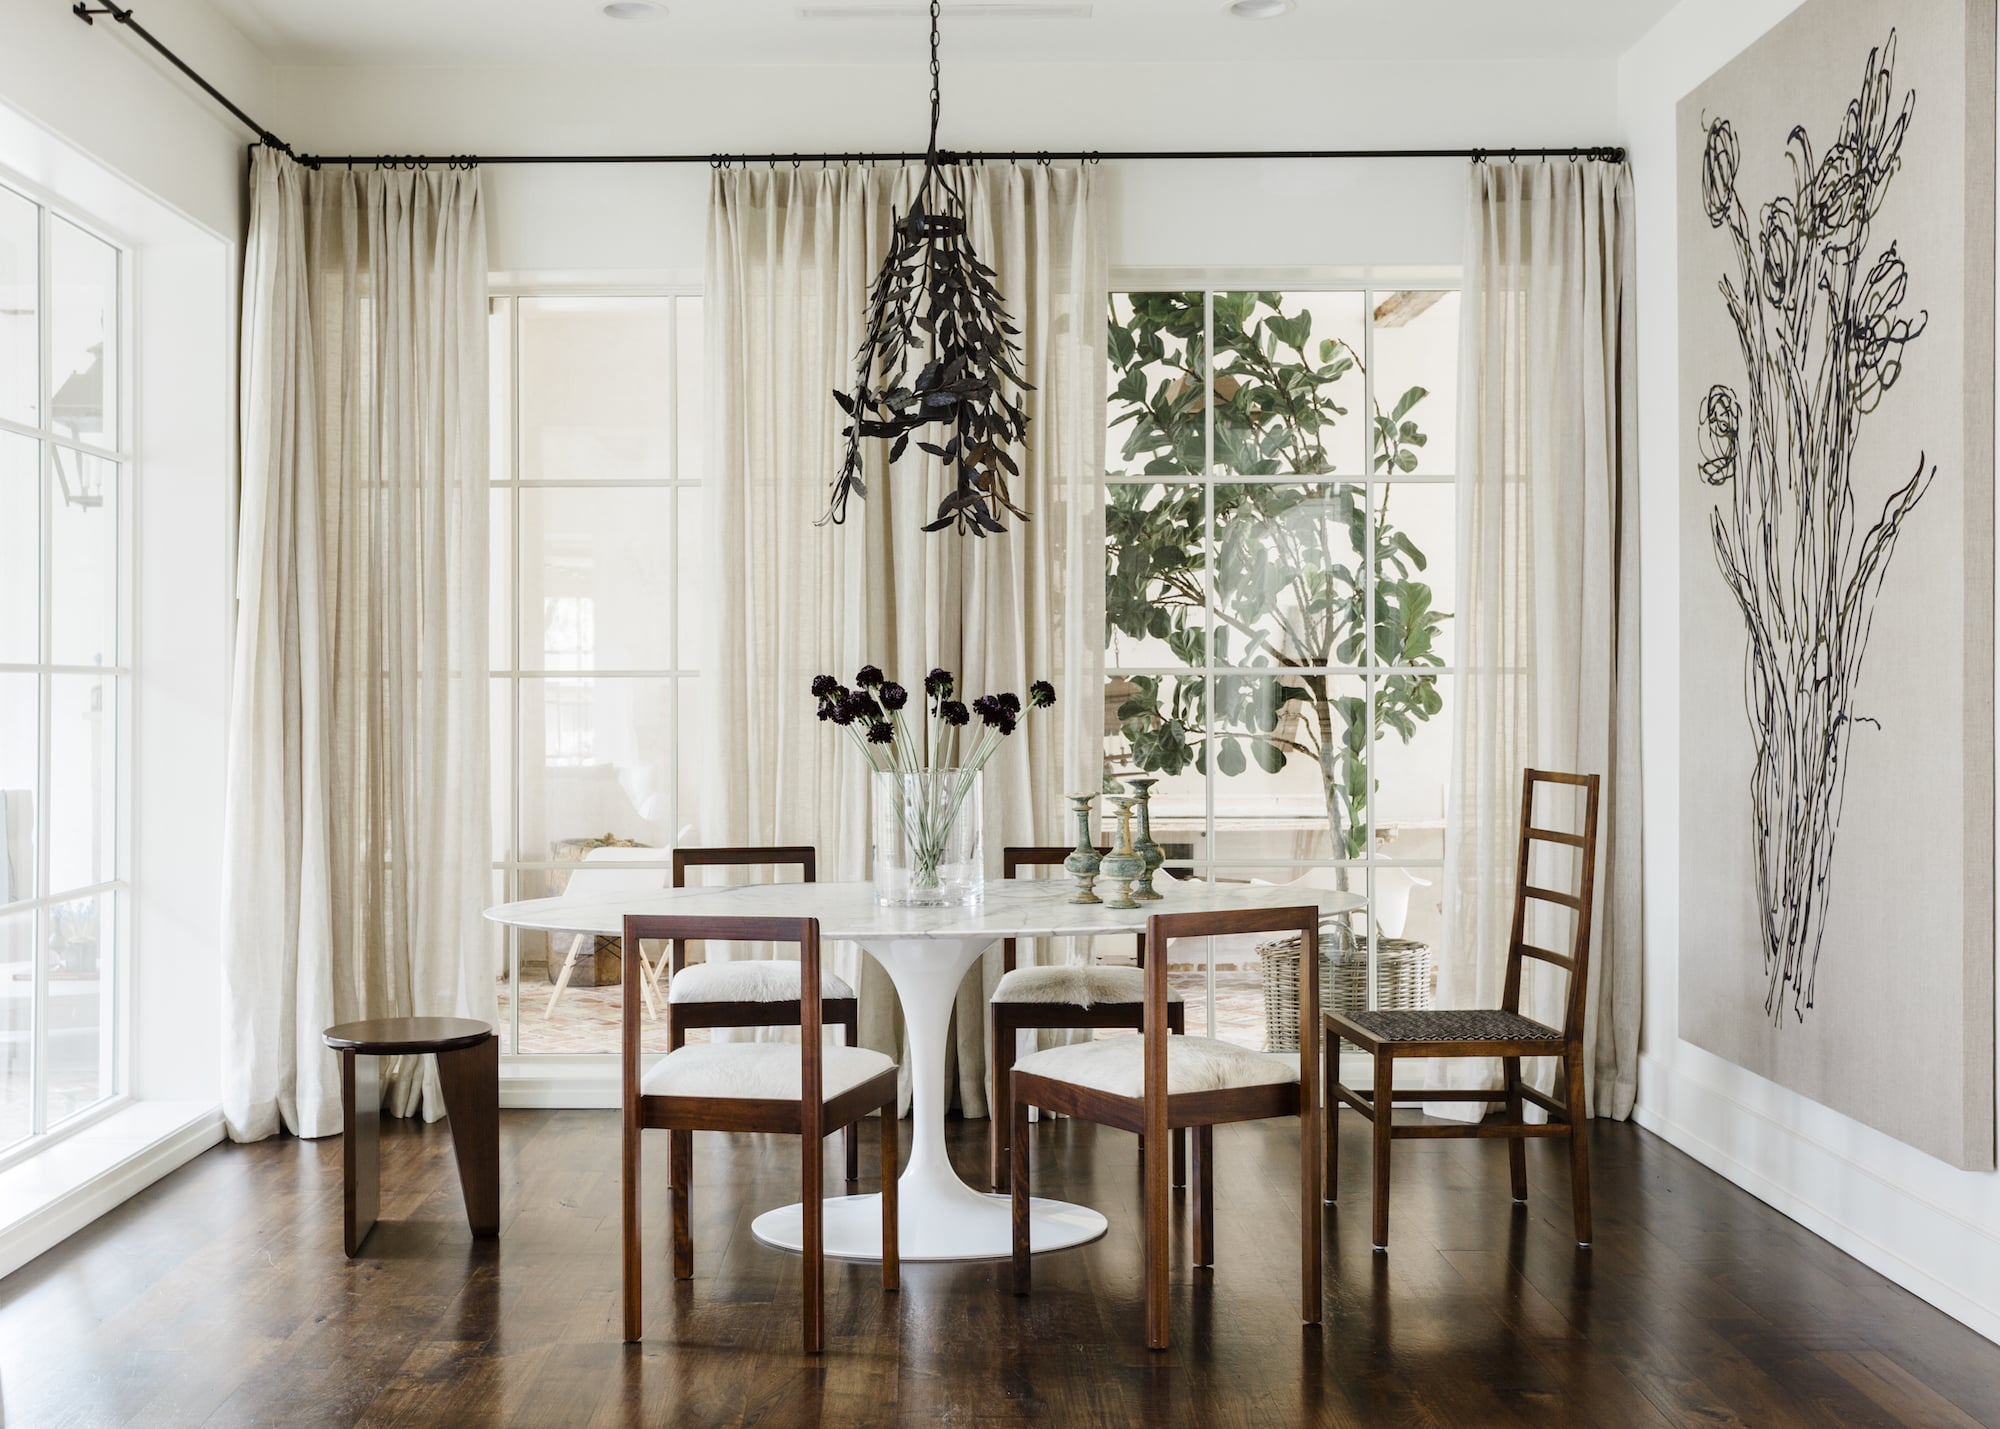 7 Designer Tips For Artfully Mismatching Your Dining Chairs The Study